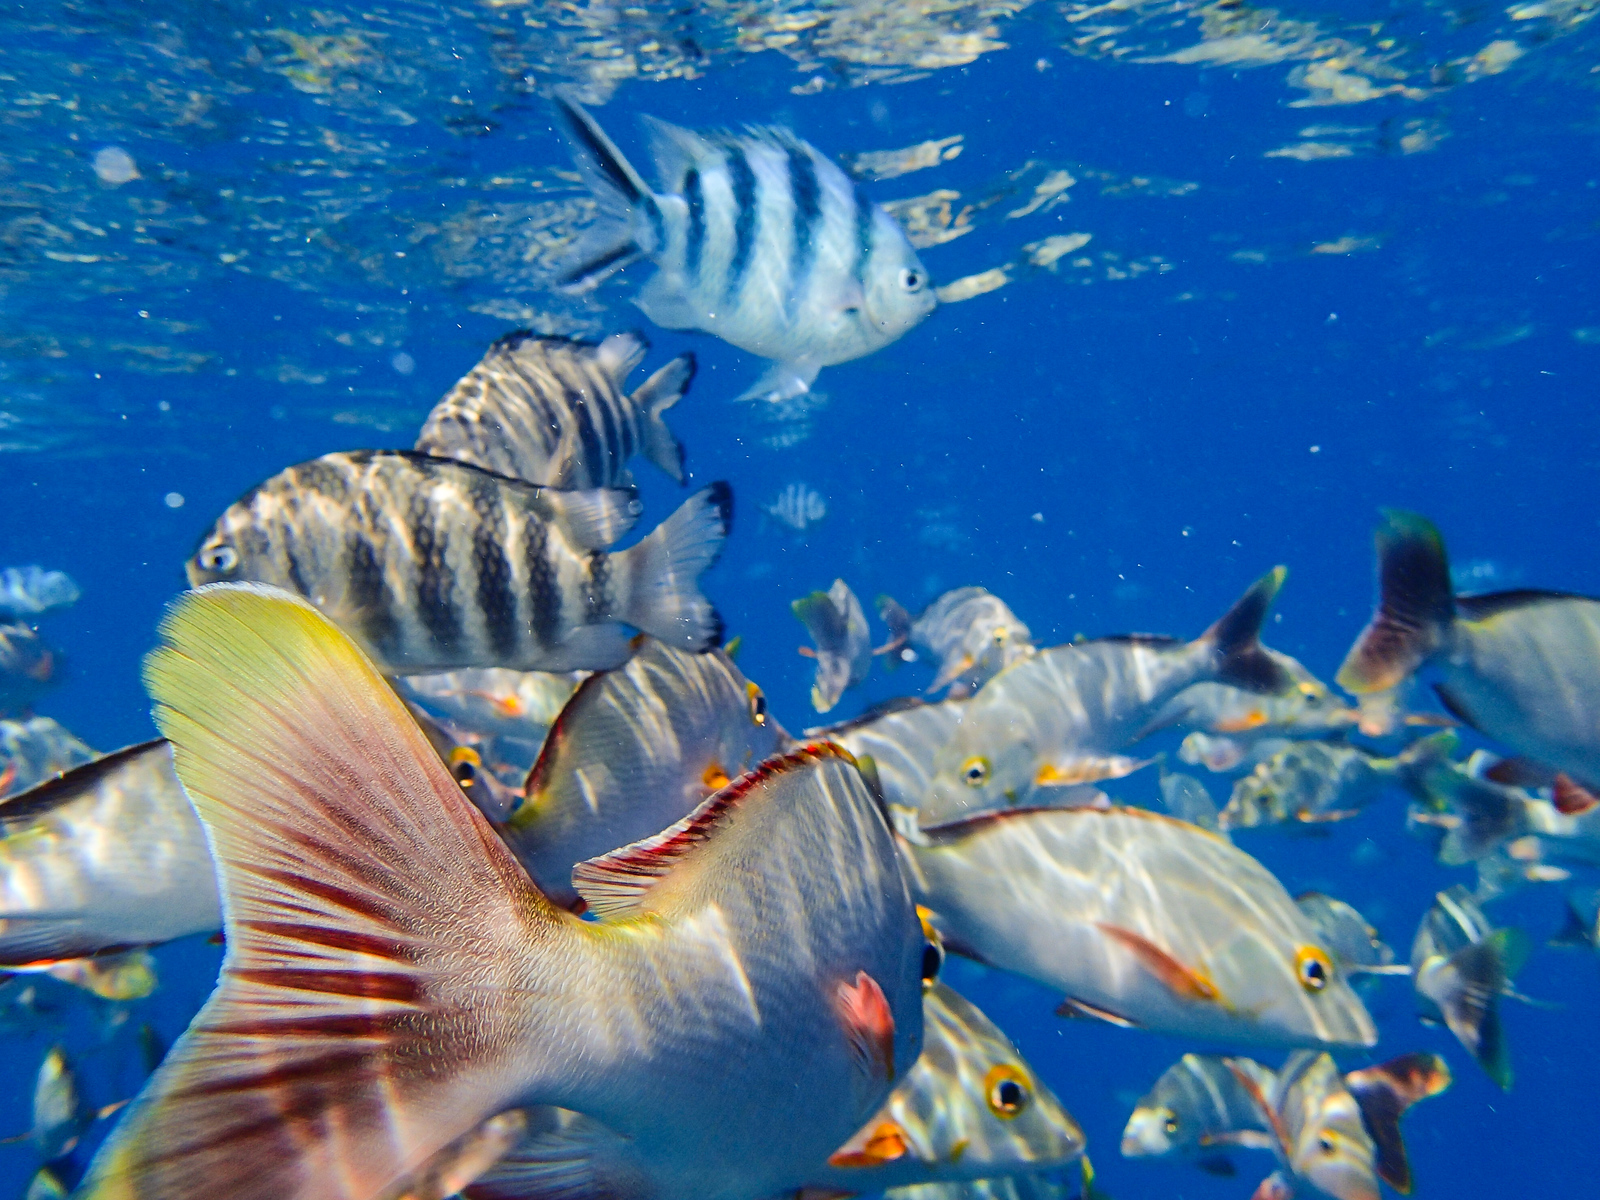 Rangiroa snorkeling includes lots of colorful fish. Read our article about this fabulous Silversea cruise excursion.